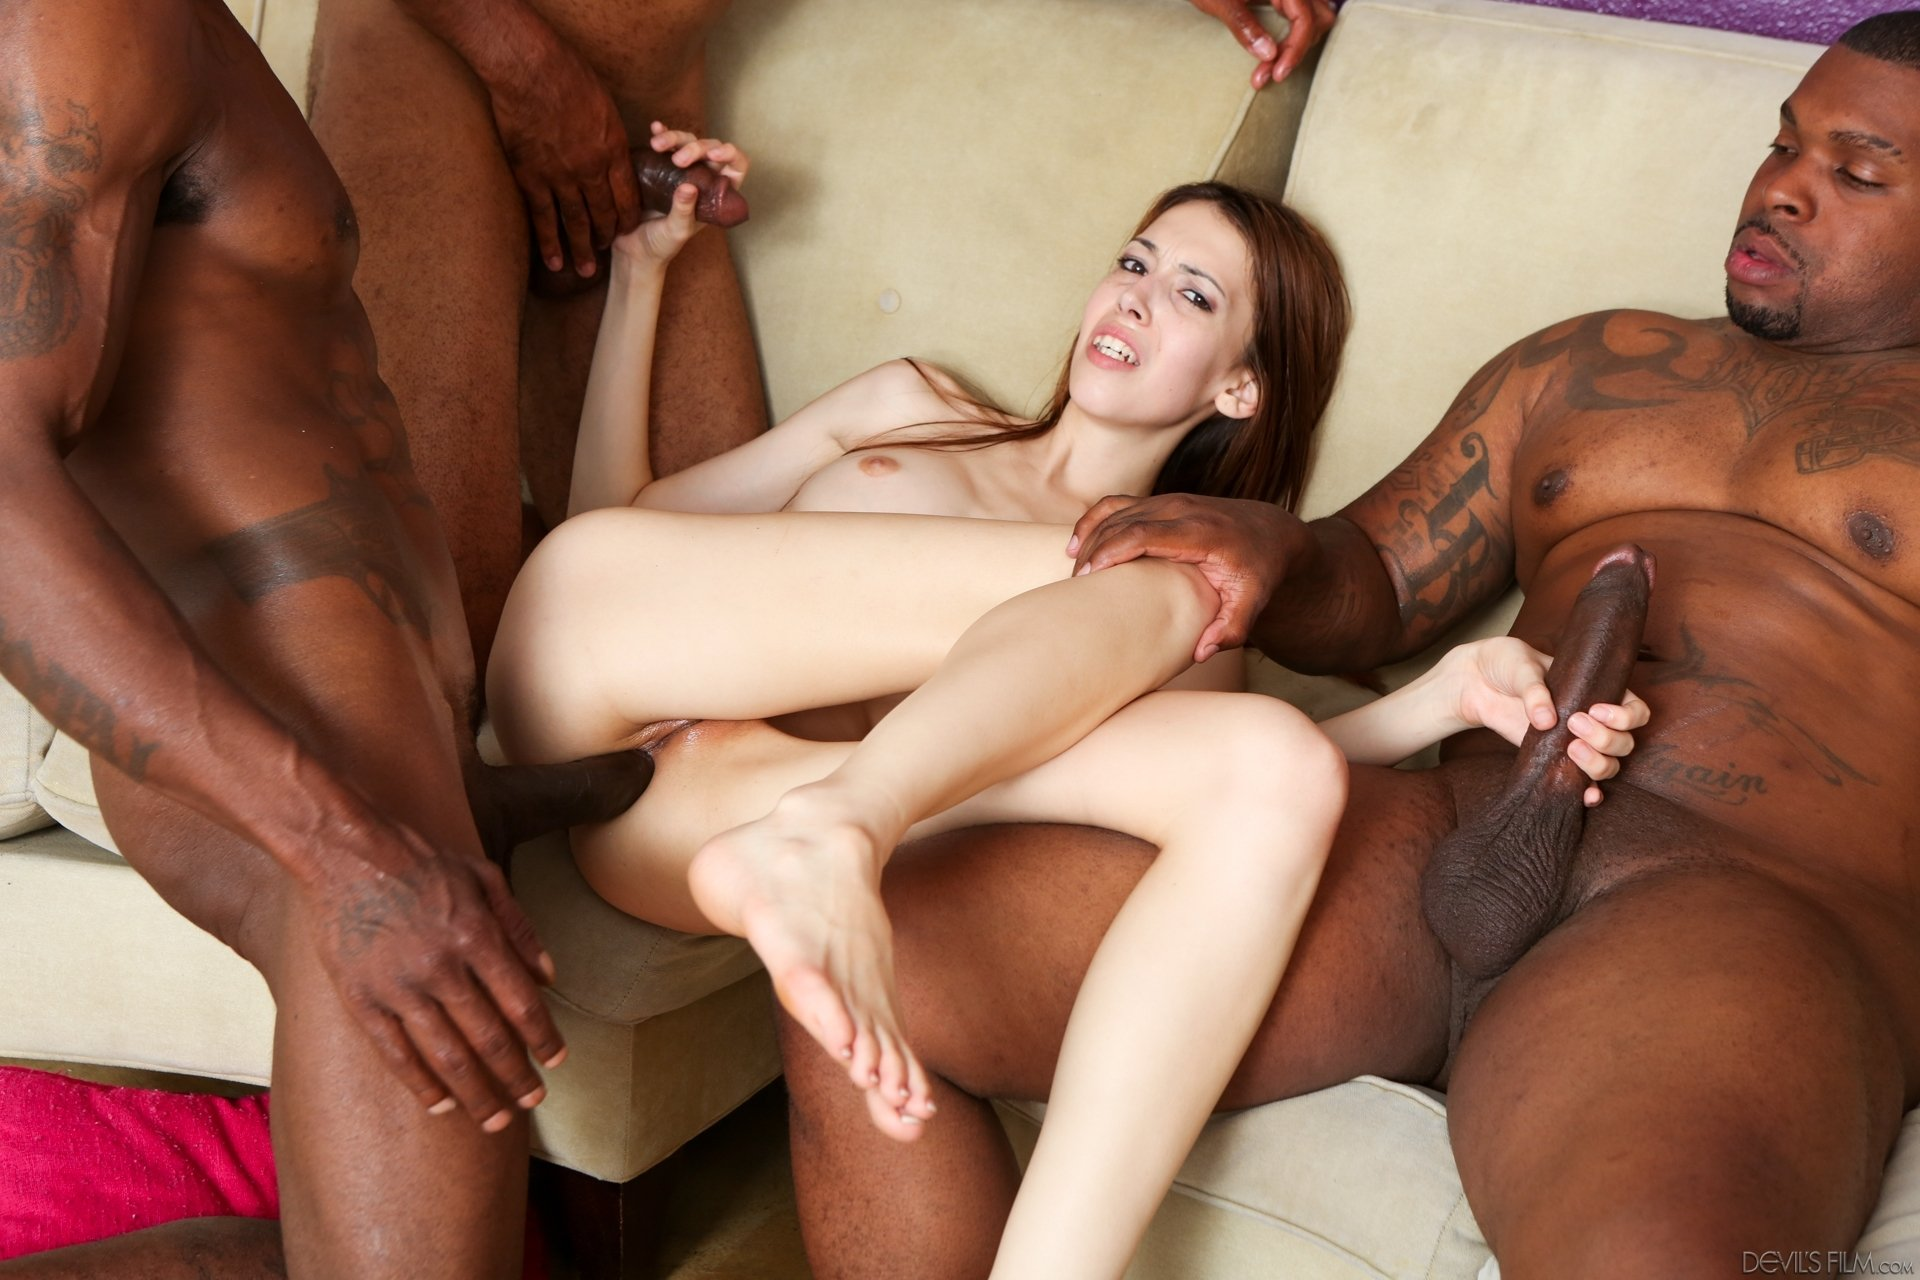 irish-girl-interracial-gangbang